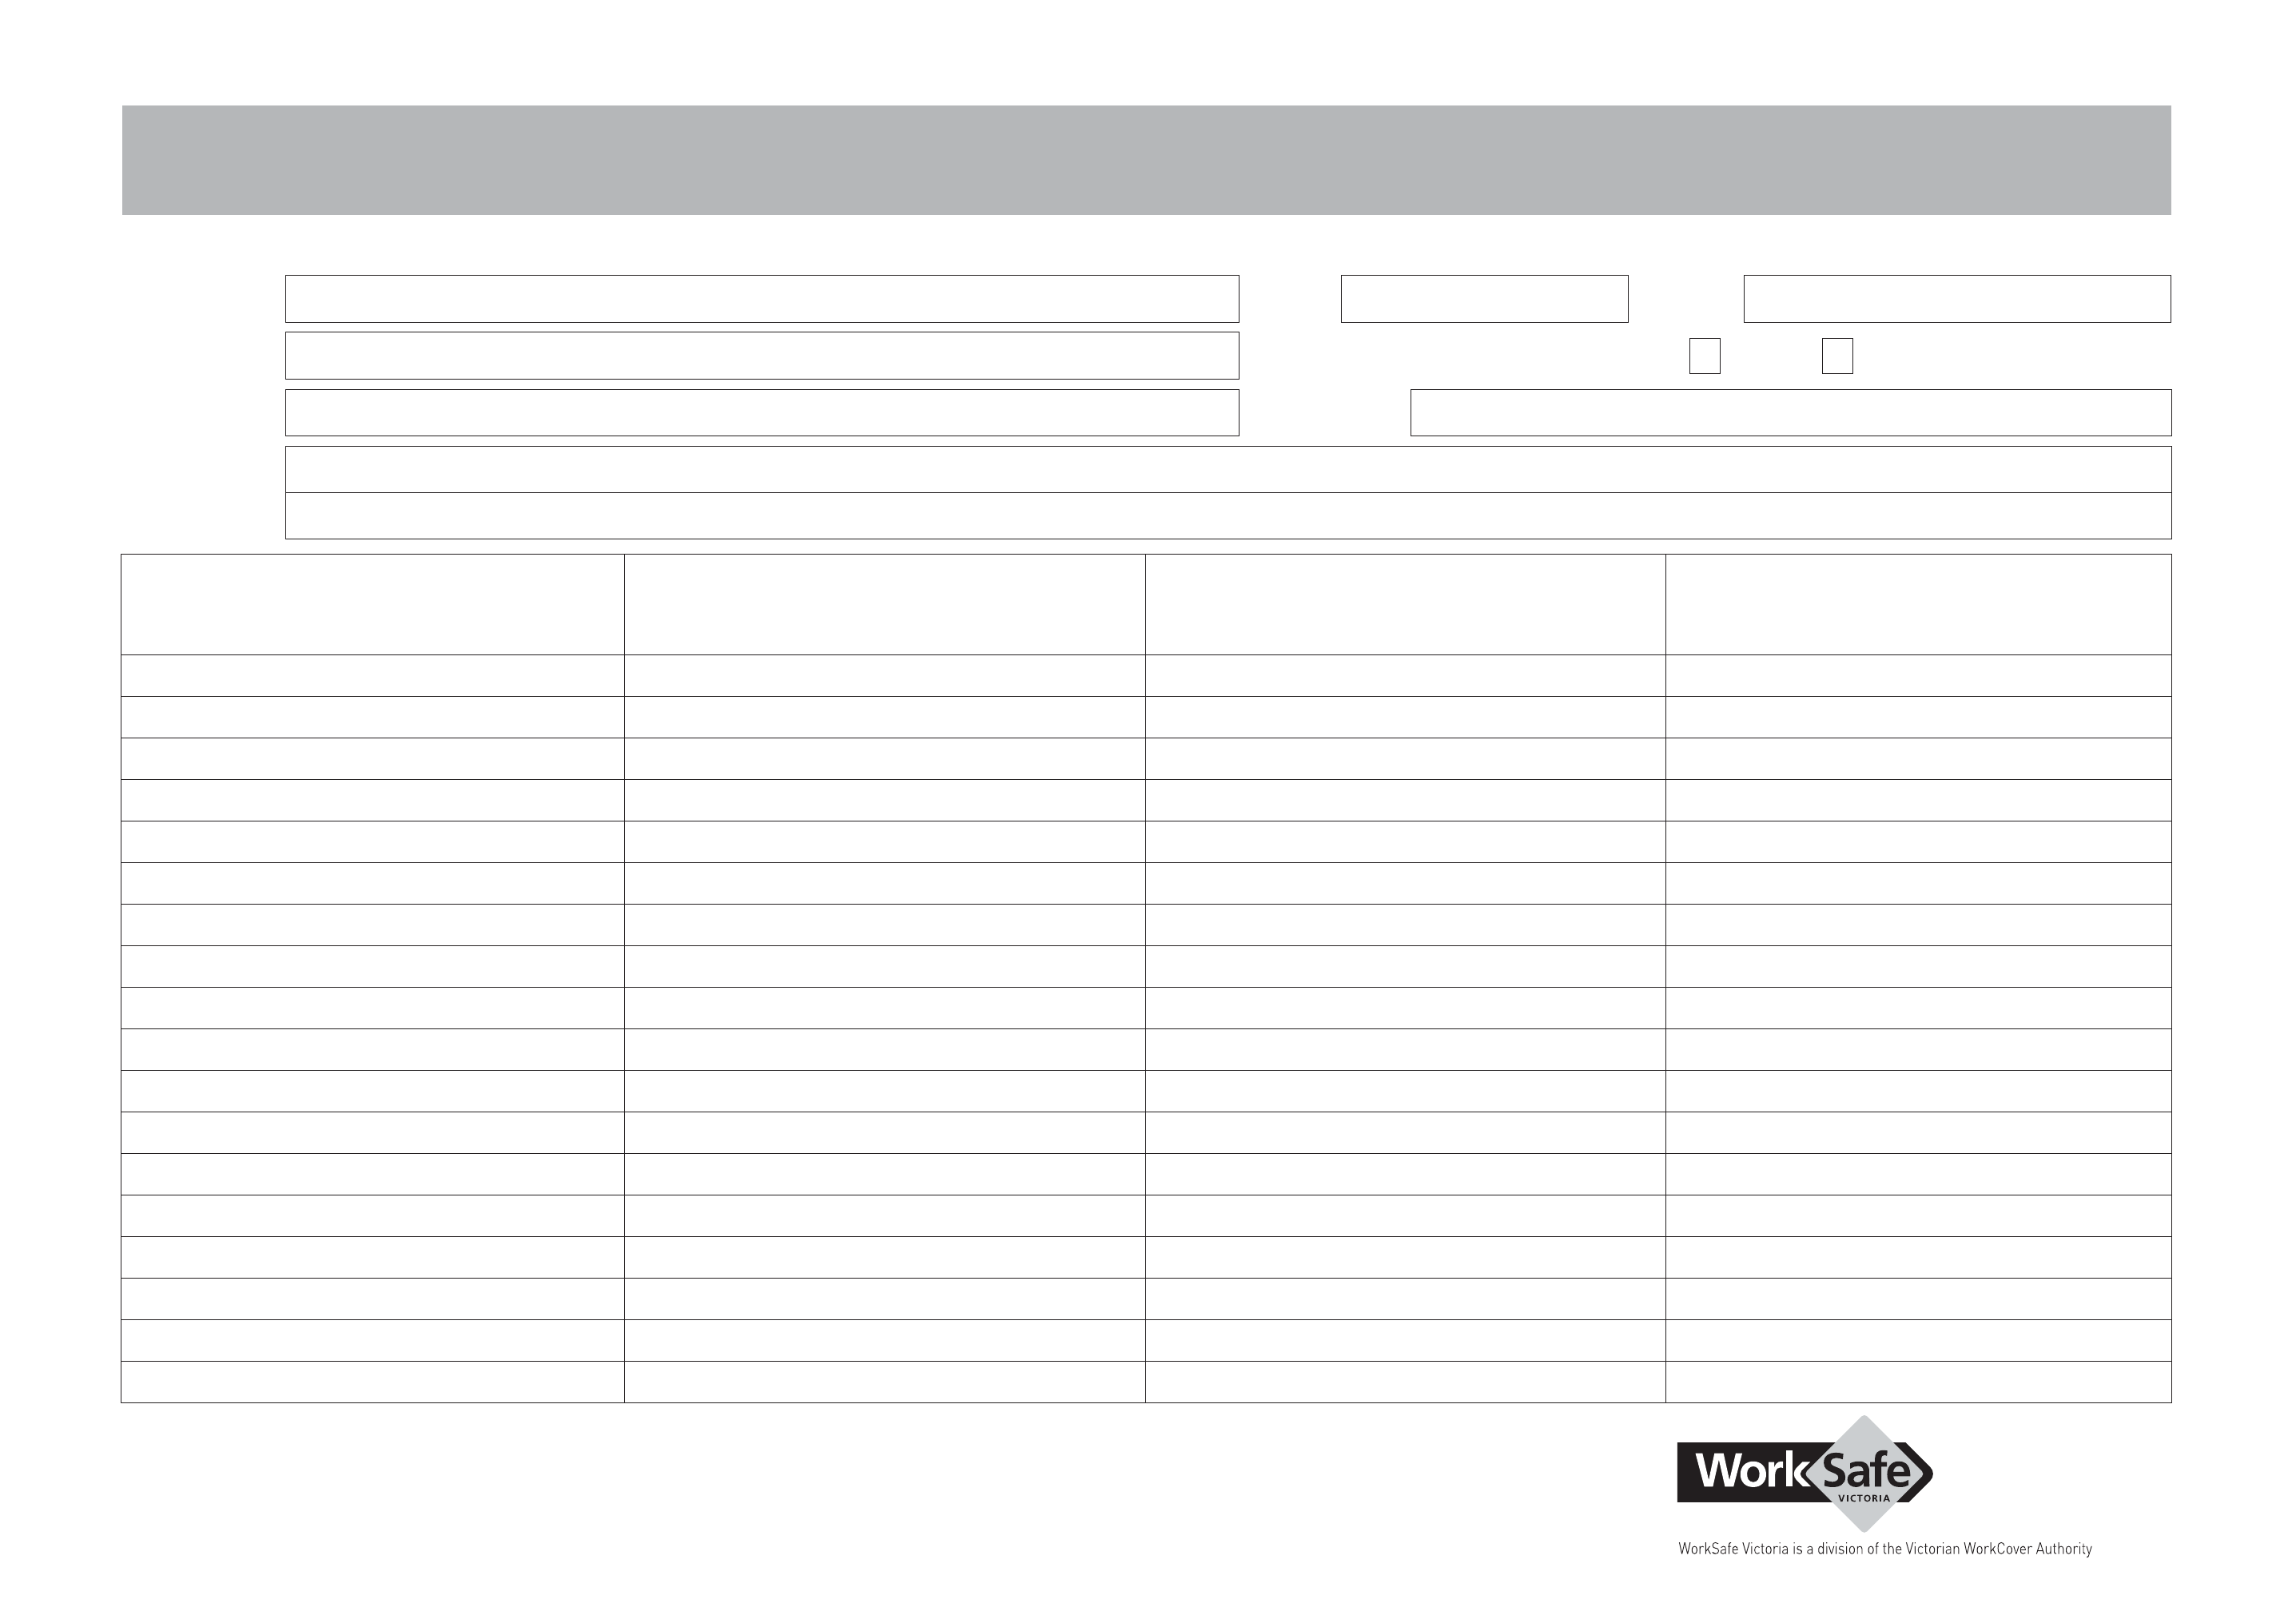 Job Safetyysis Worksheet Free Download